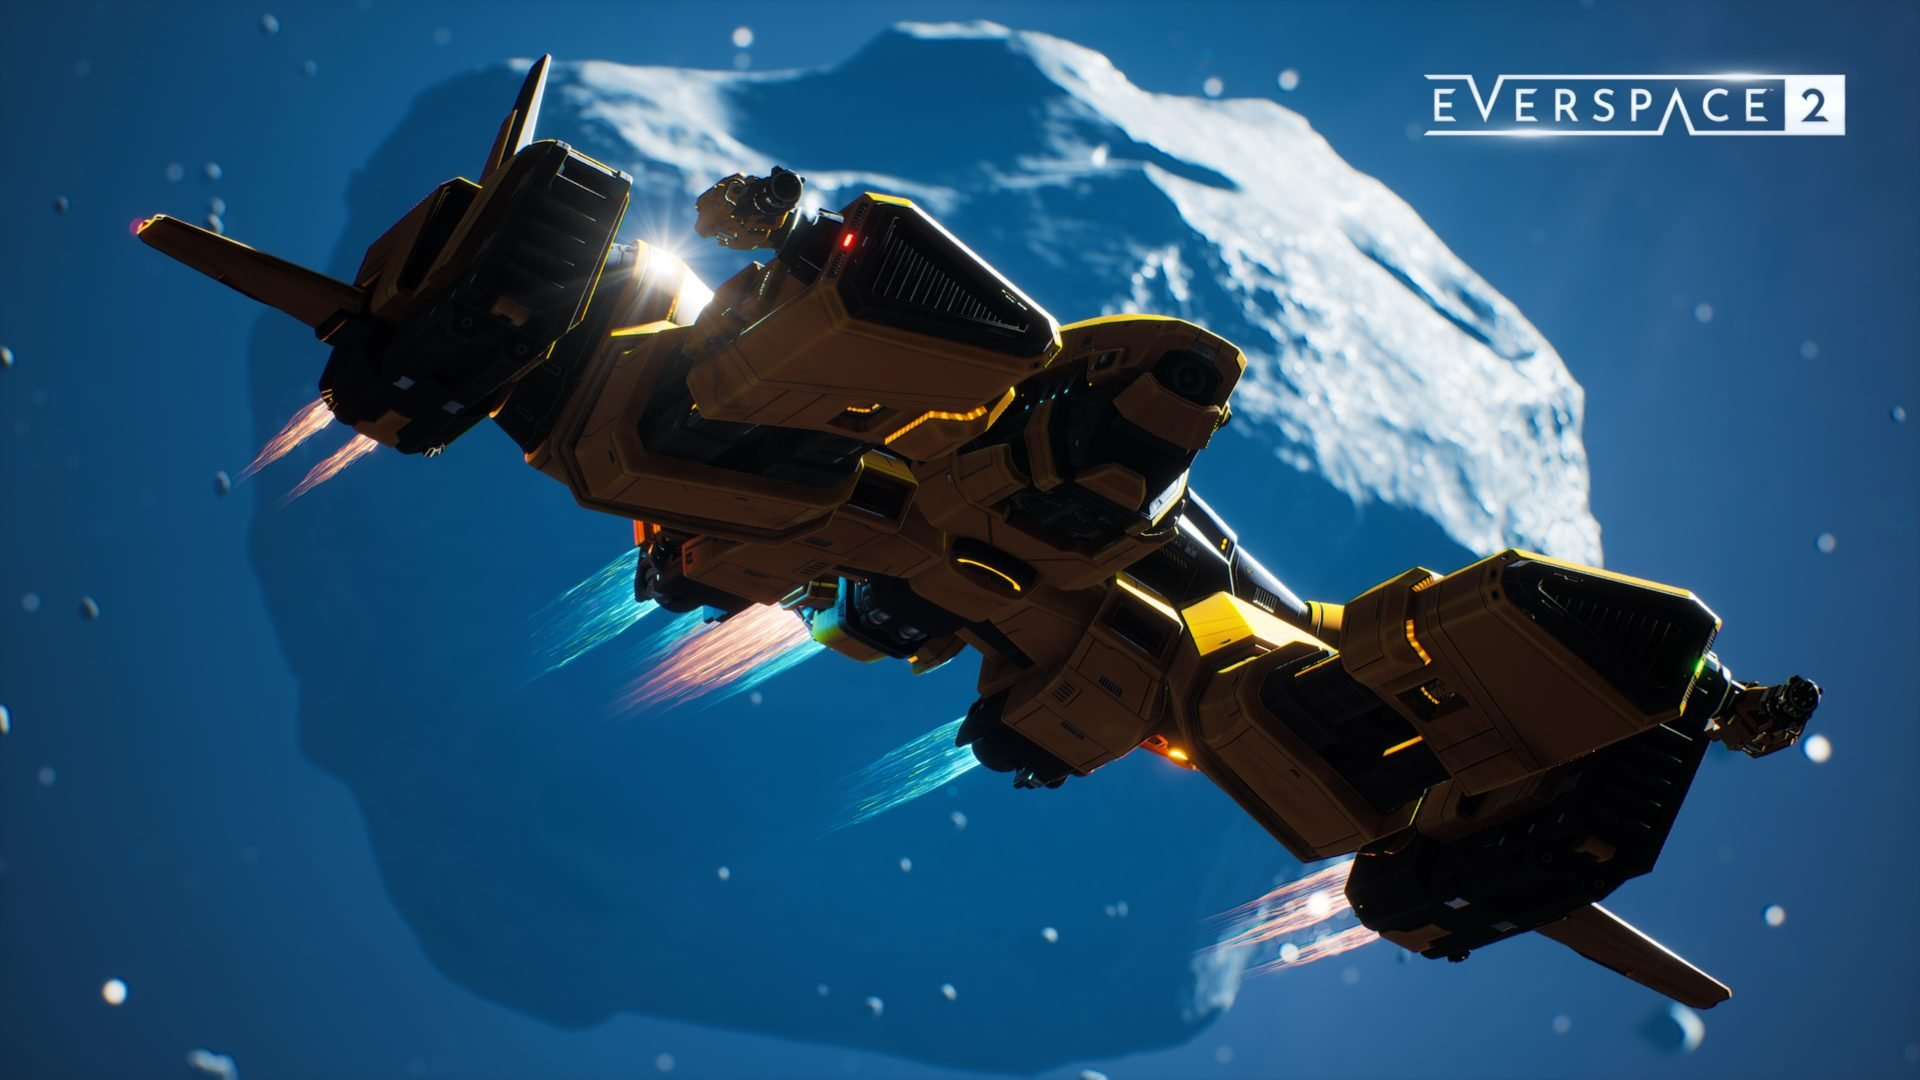 Everspace 2 How to Get New Ships Guide